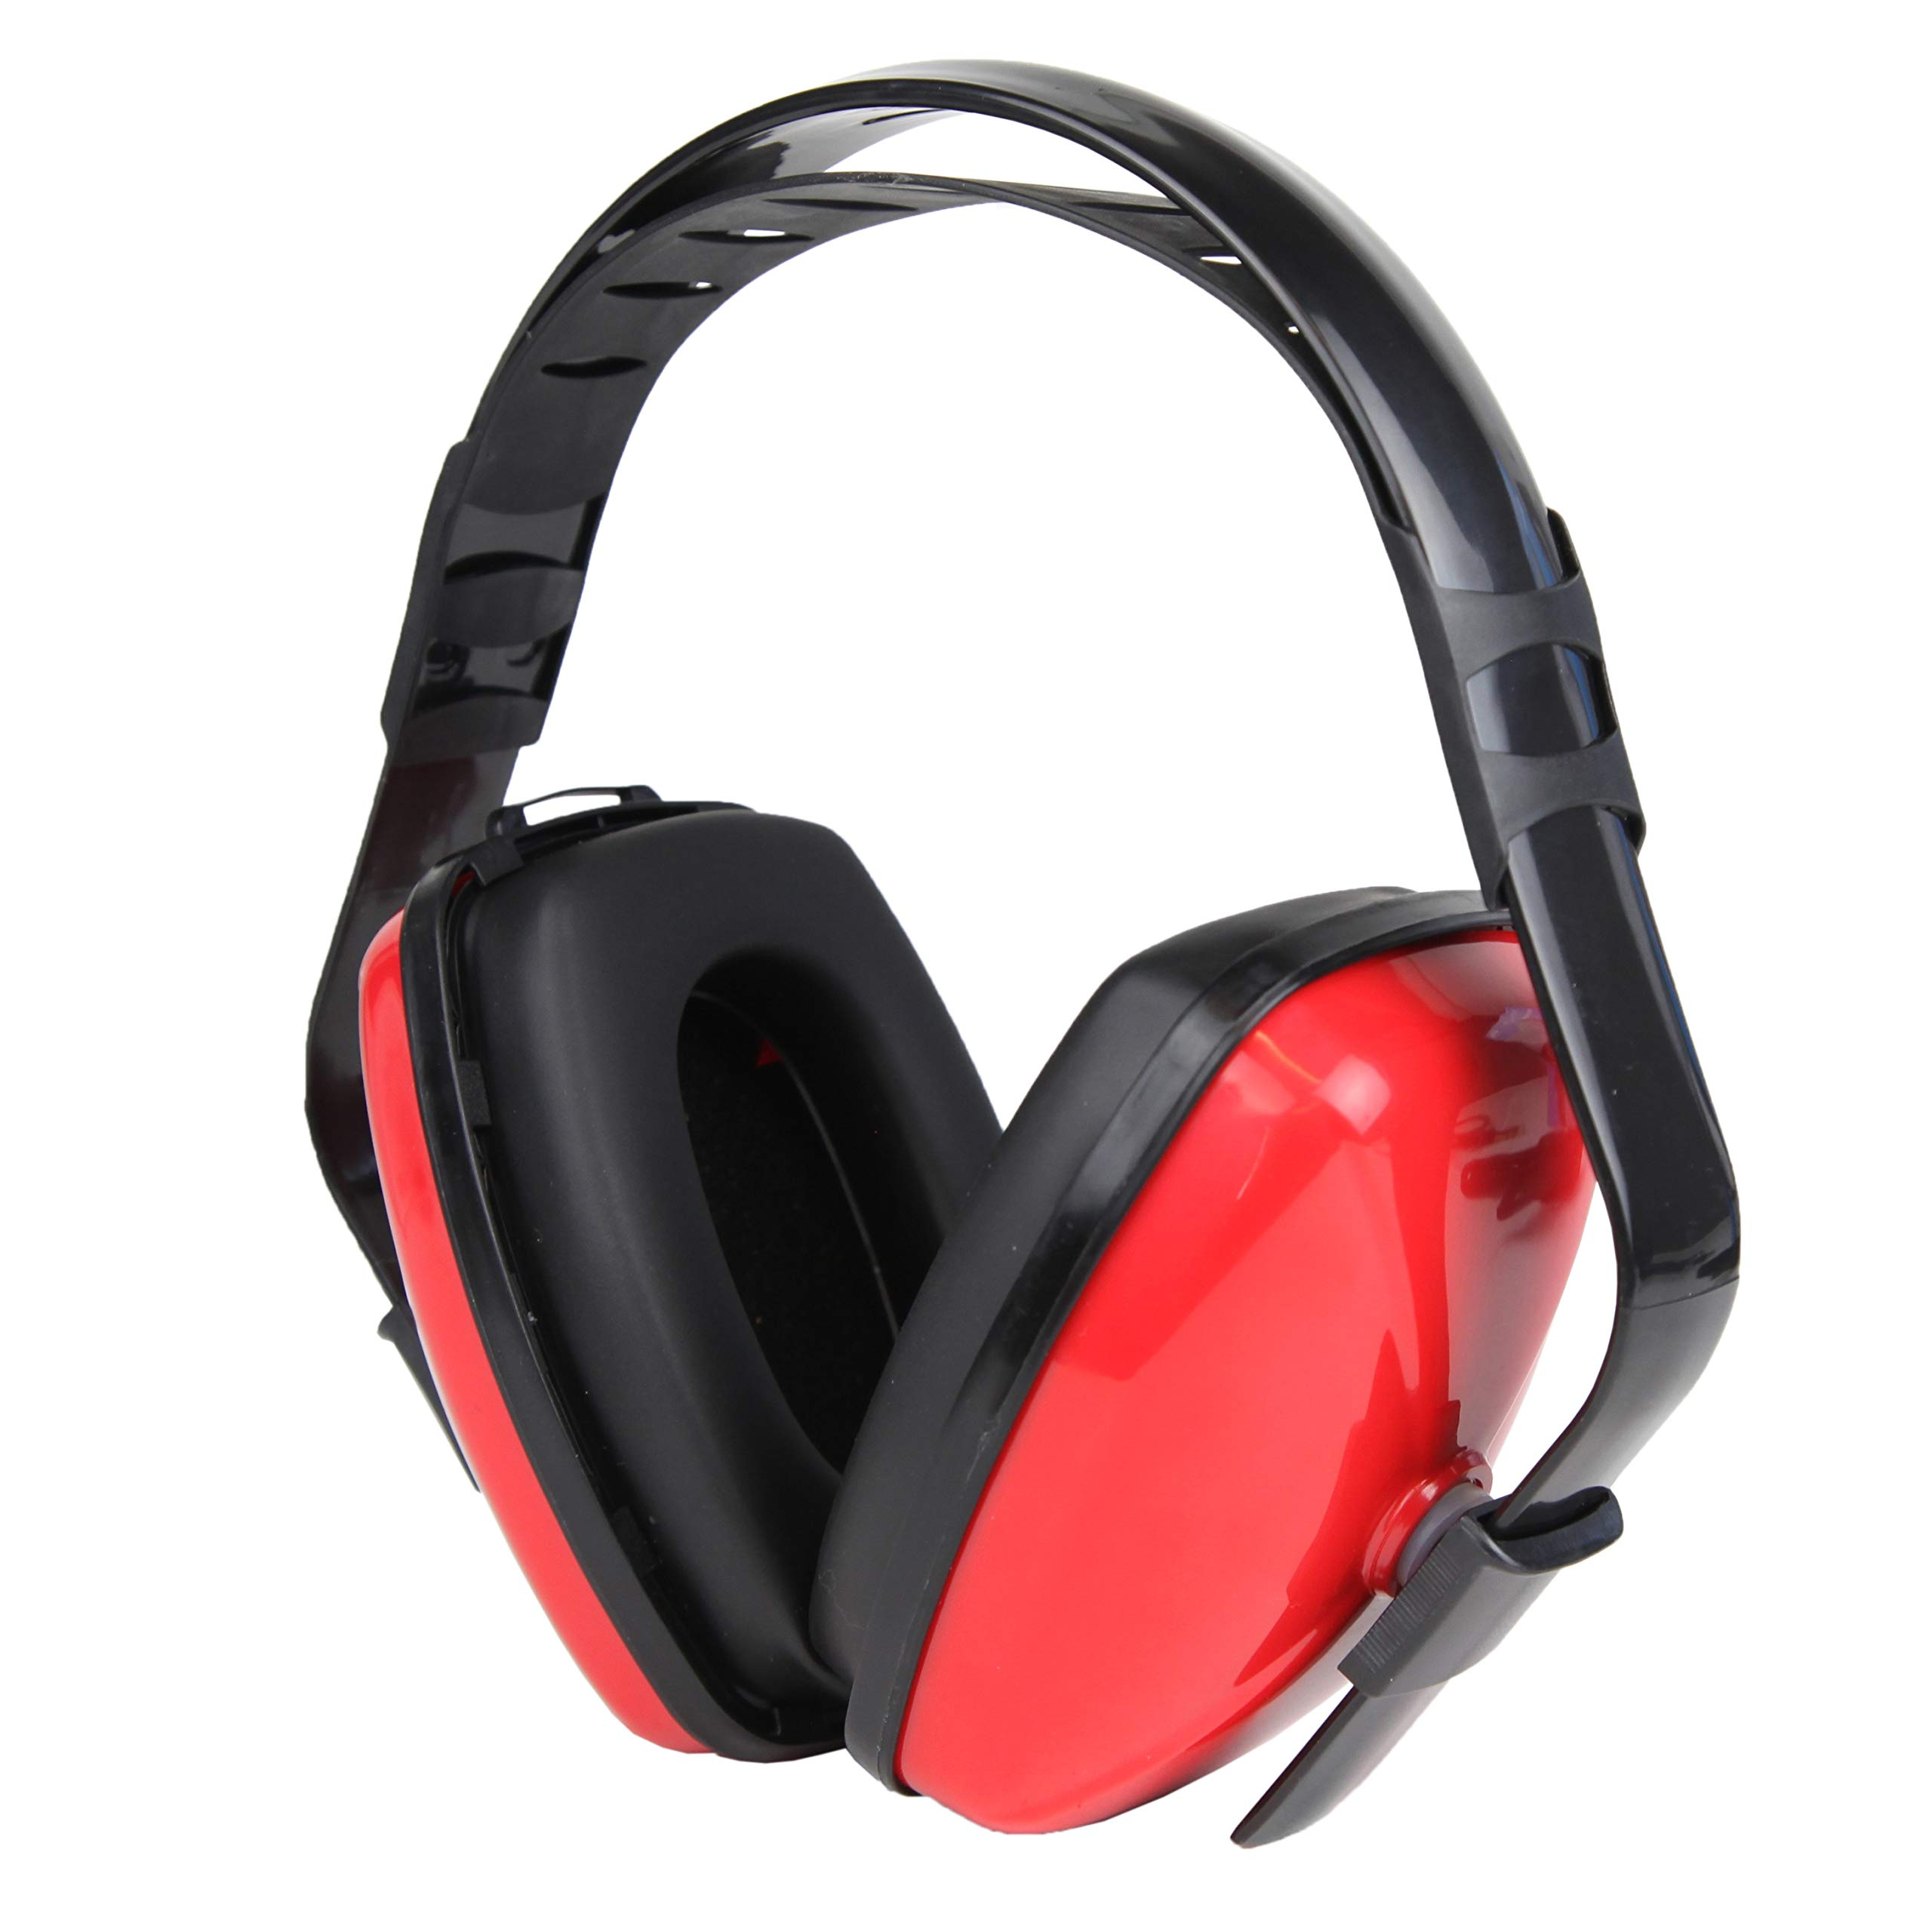 20 Pack - Cyber Acoustic Professional Safety Lightweight Ear Muffs for Hearing Protection and Noise Reduction (ACS-310)